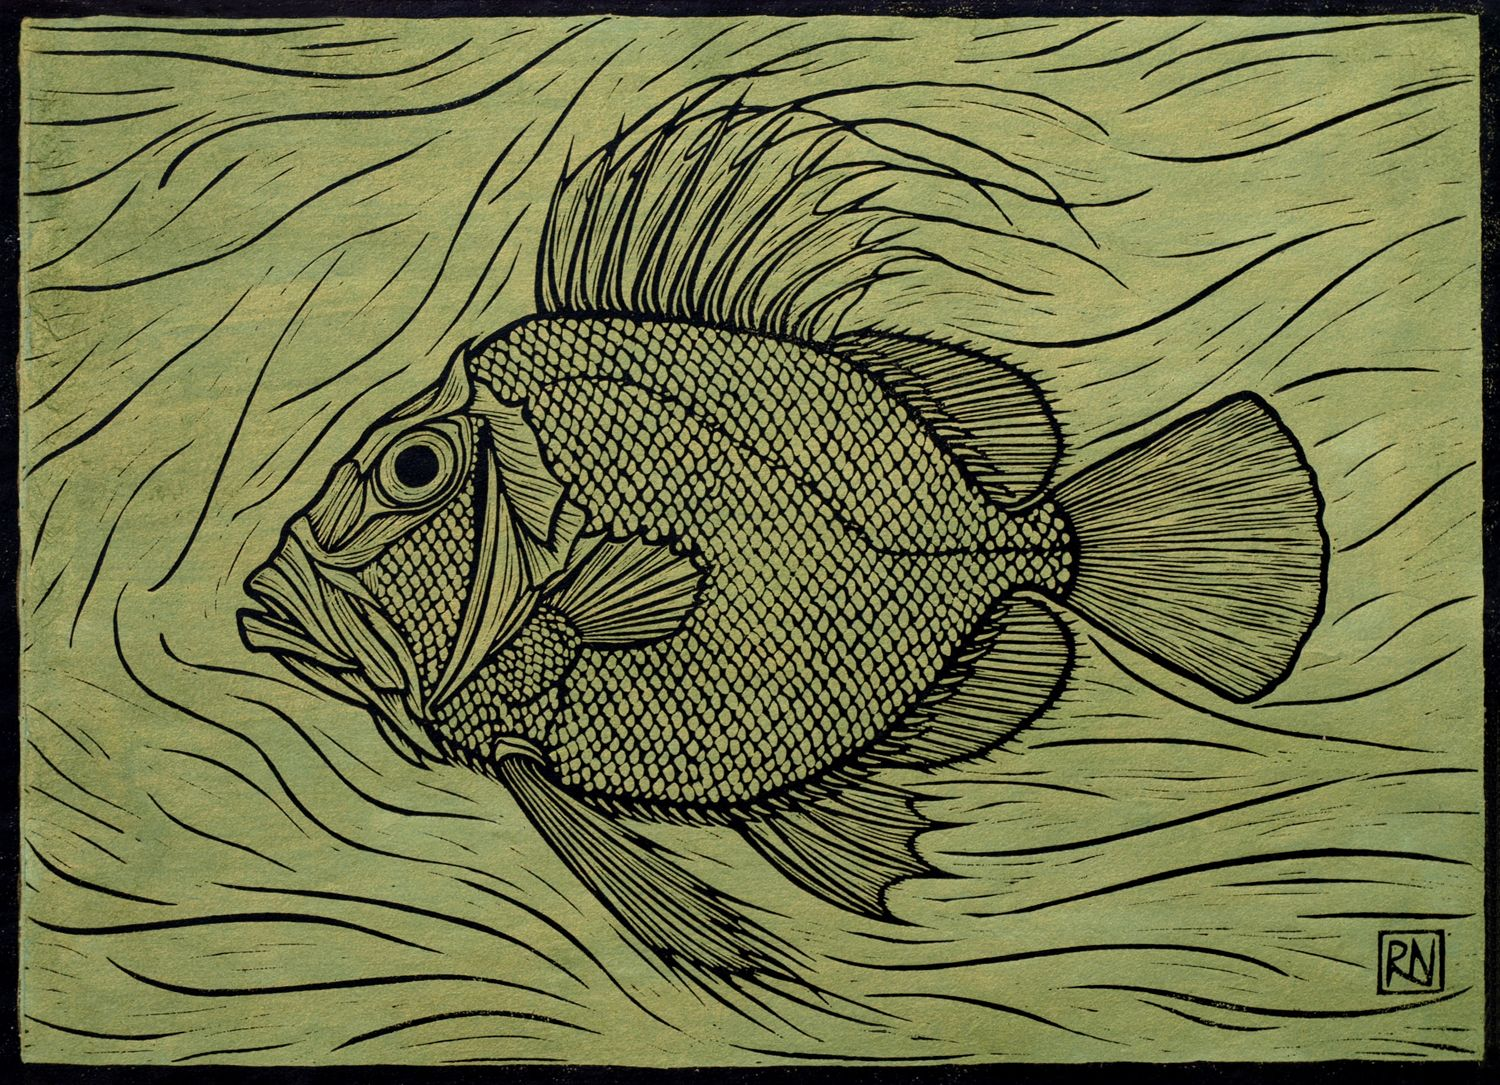 Pin by Becky Wienges on Printing/stamps | Pinterest | John dory ...